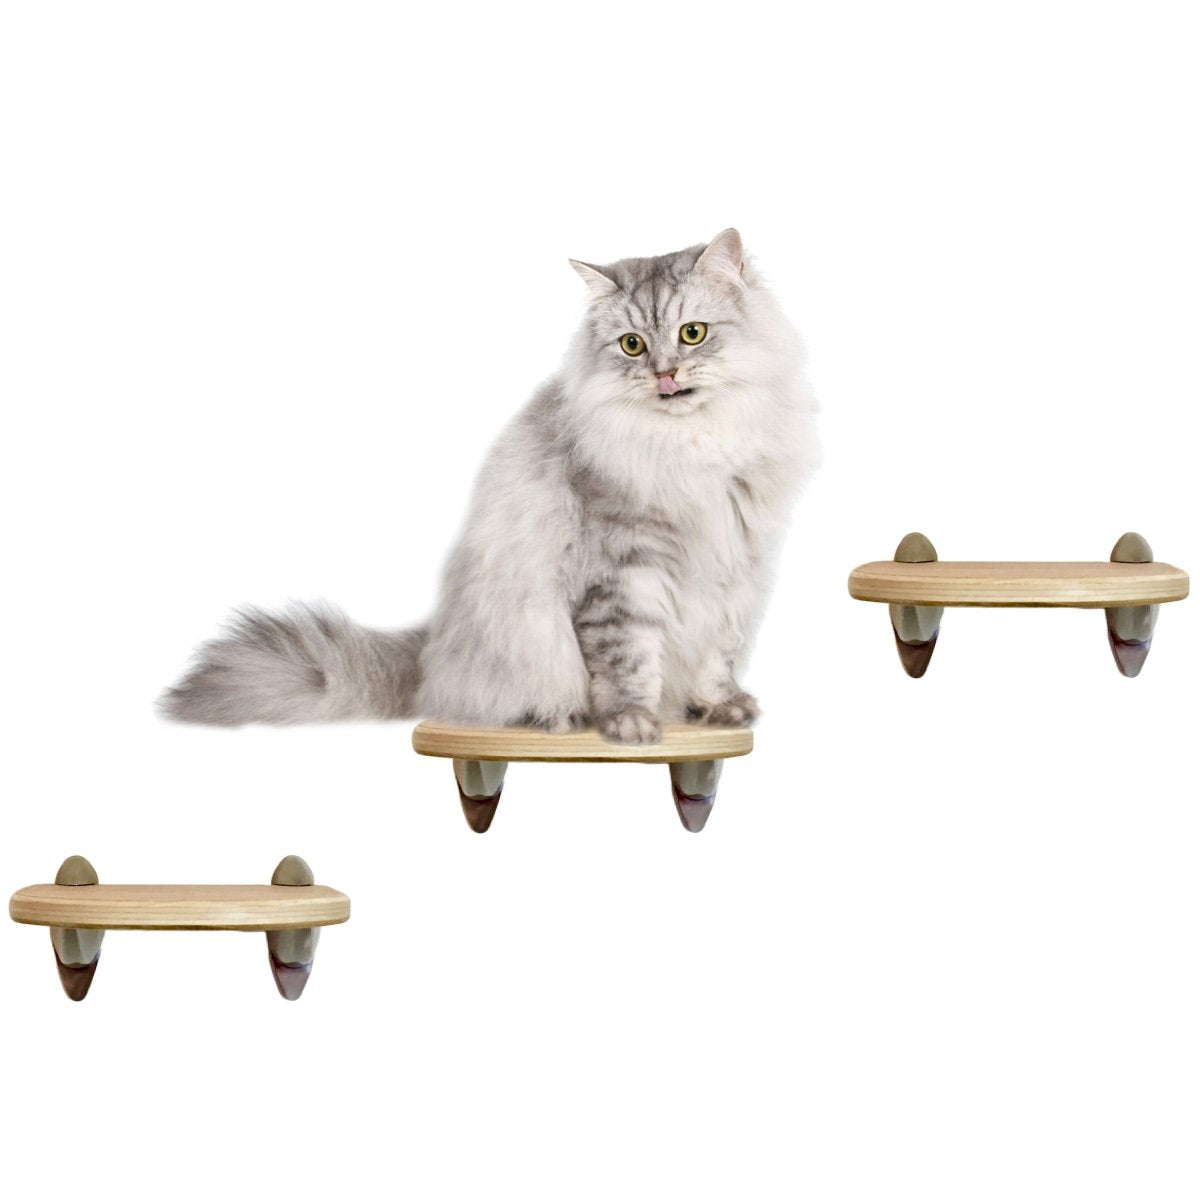 Purrfectly Catastic Creations - Handcrafted Modern Cat Climbing Wall Furniture cat step steps shelf shelves stairs perch tree tower